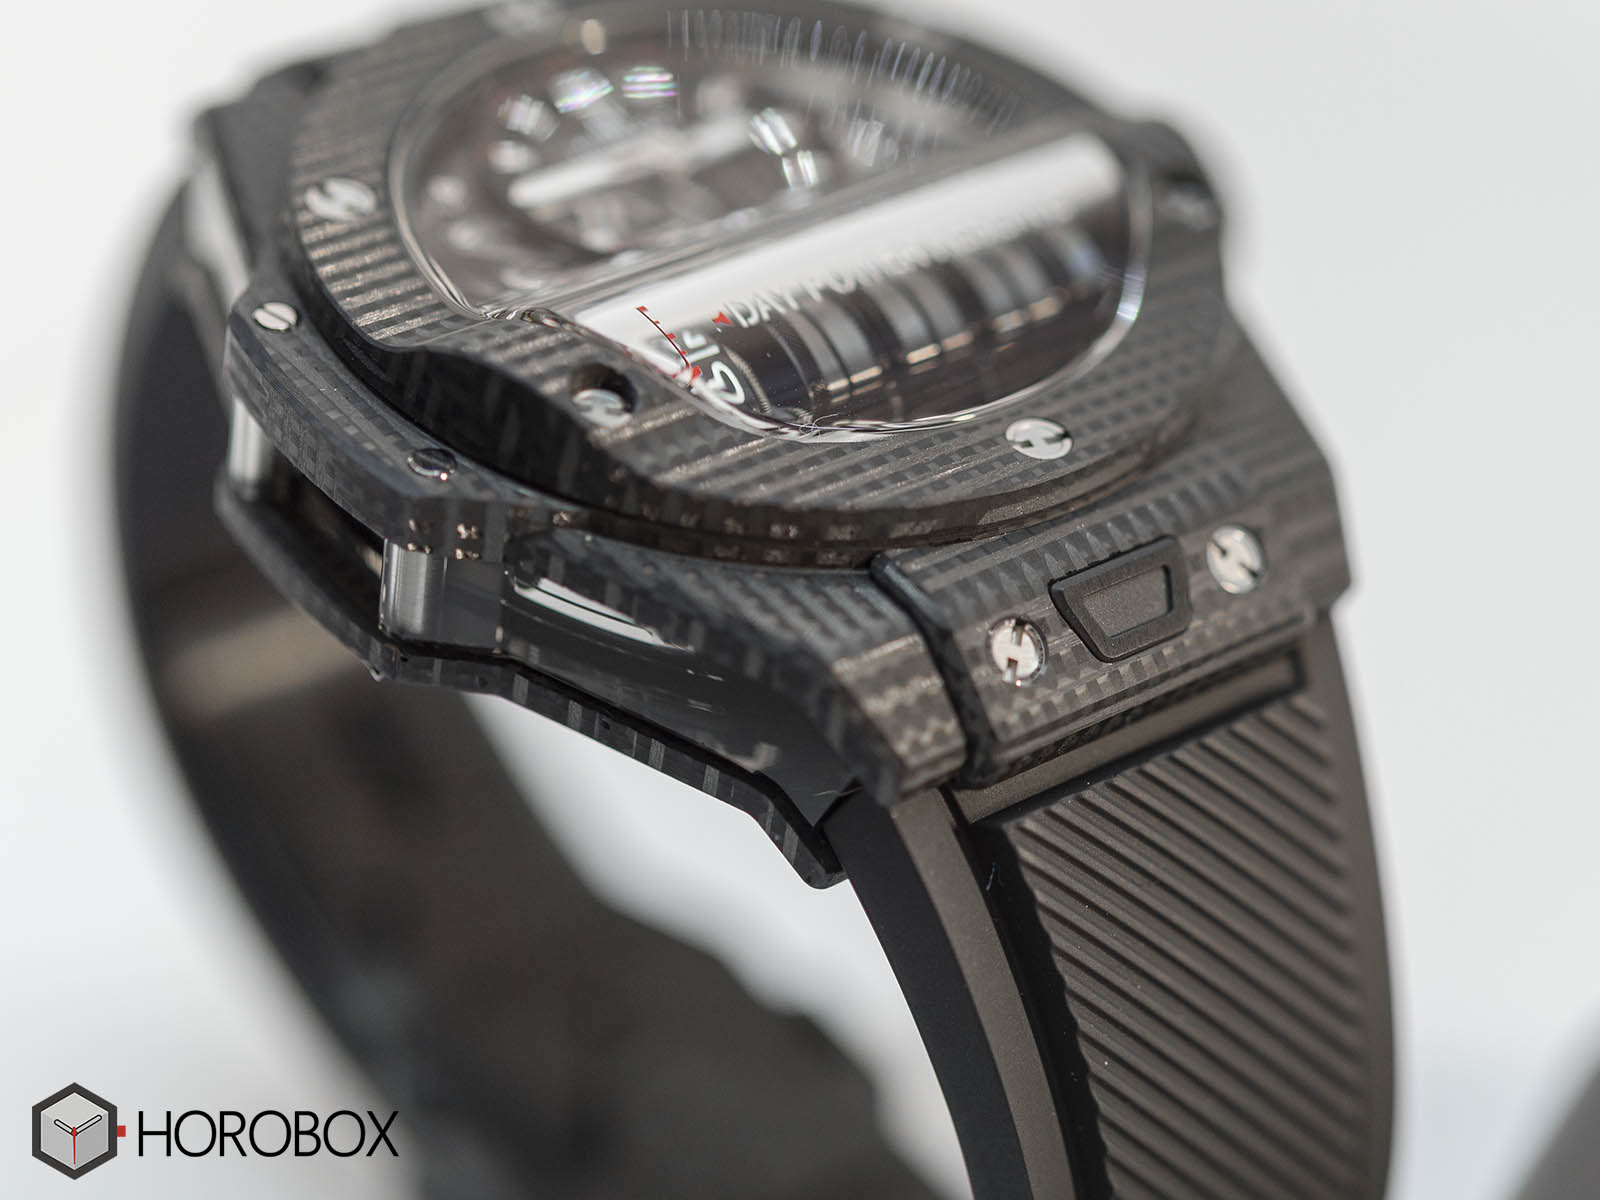 911-qd-0123-rx-hublot-mp-11-power-reserve-14-days-8.jpg